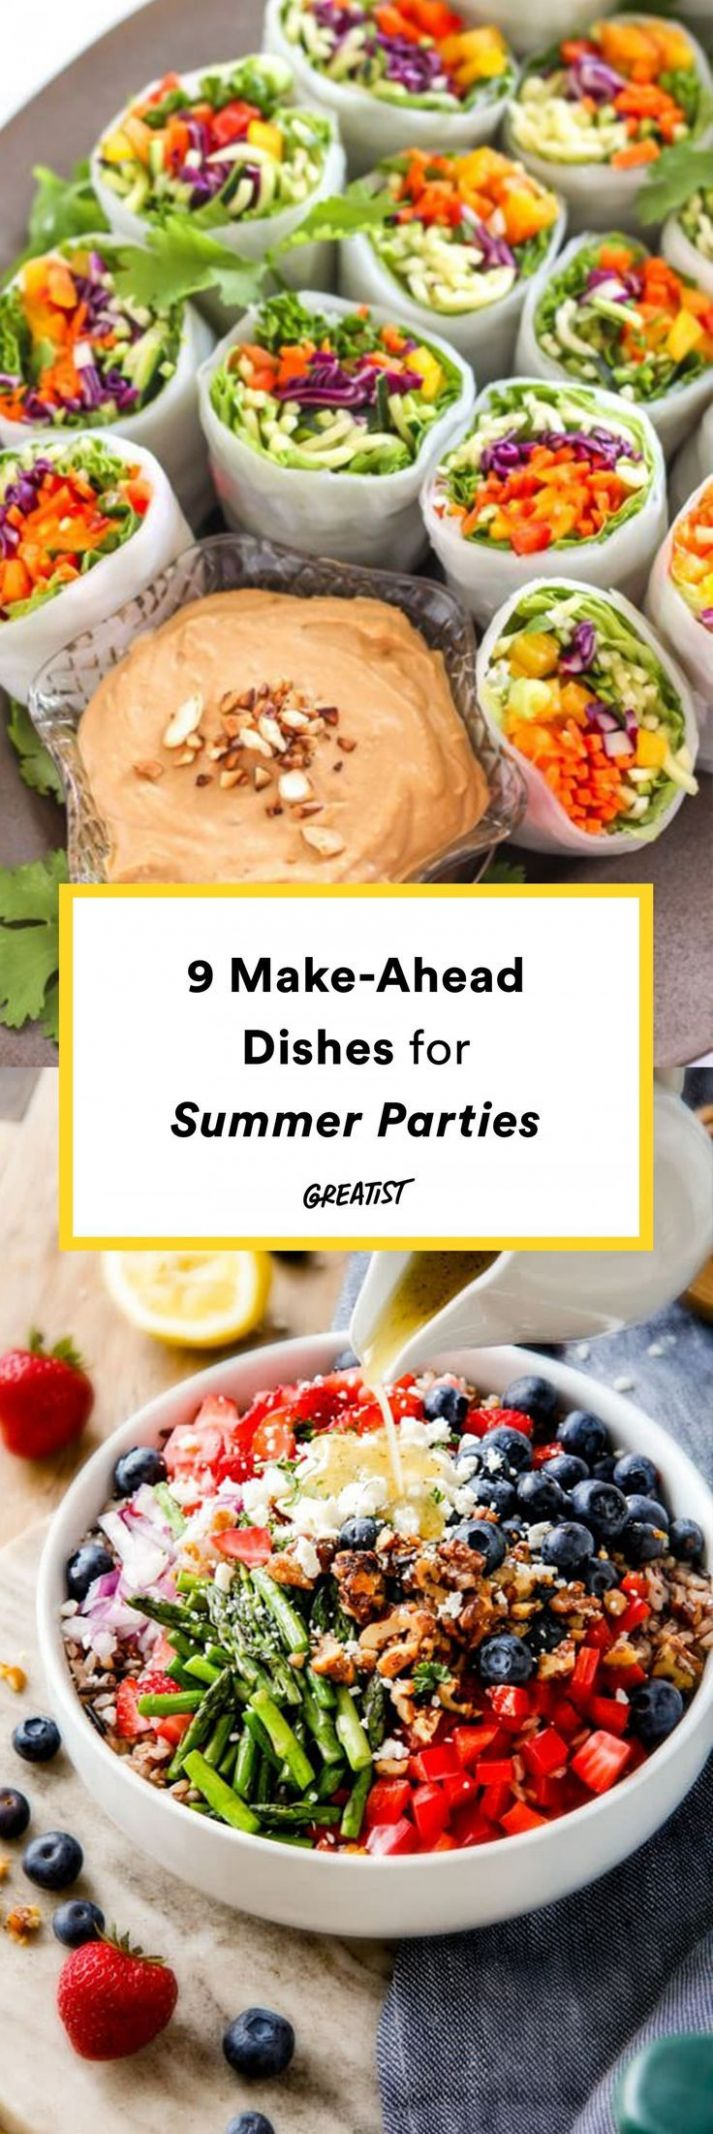 8 Make-Ahead Dishes for Summer Parties - Vegetarian/Vegan Summer ..